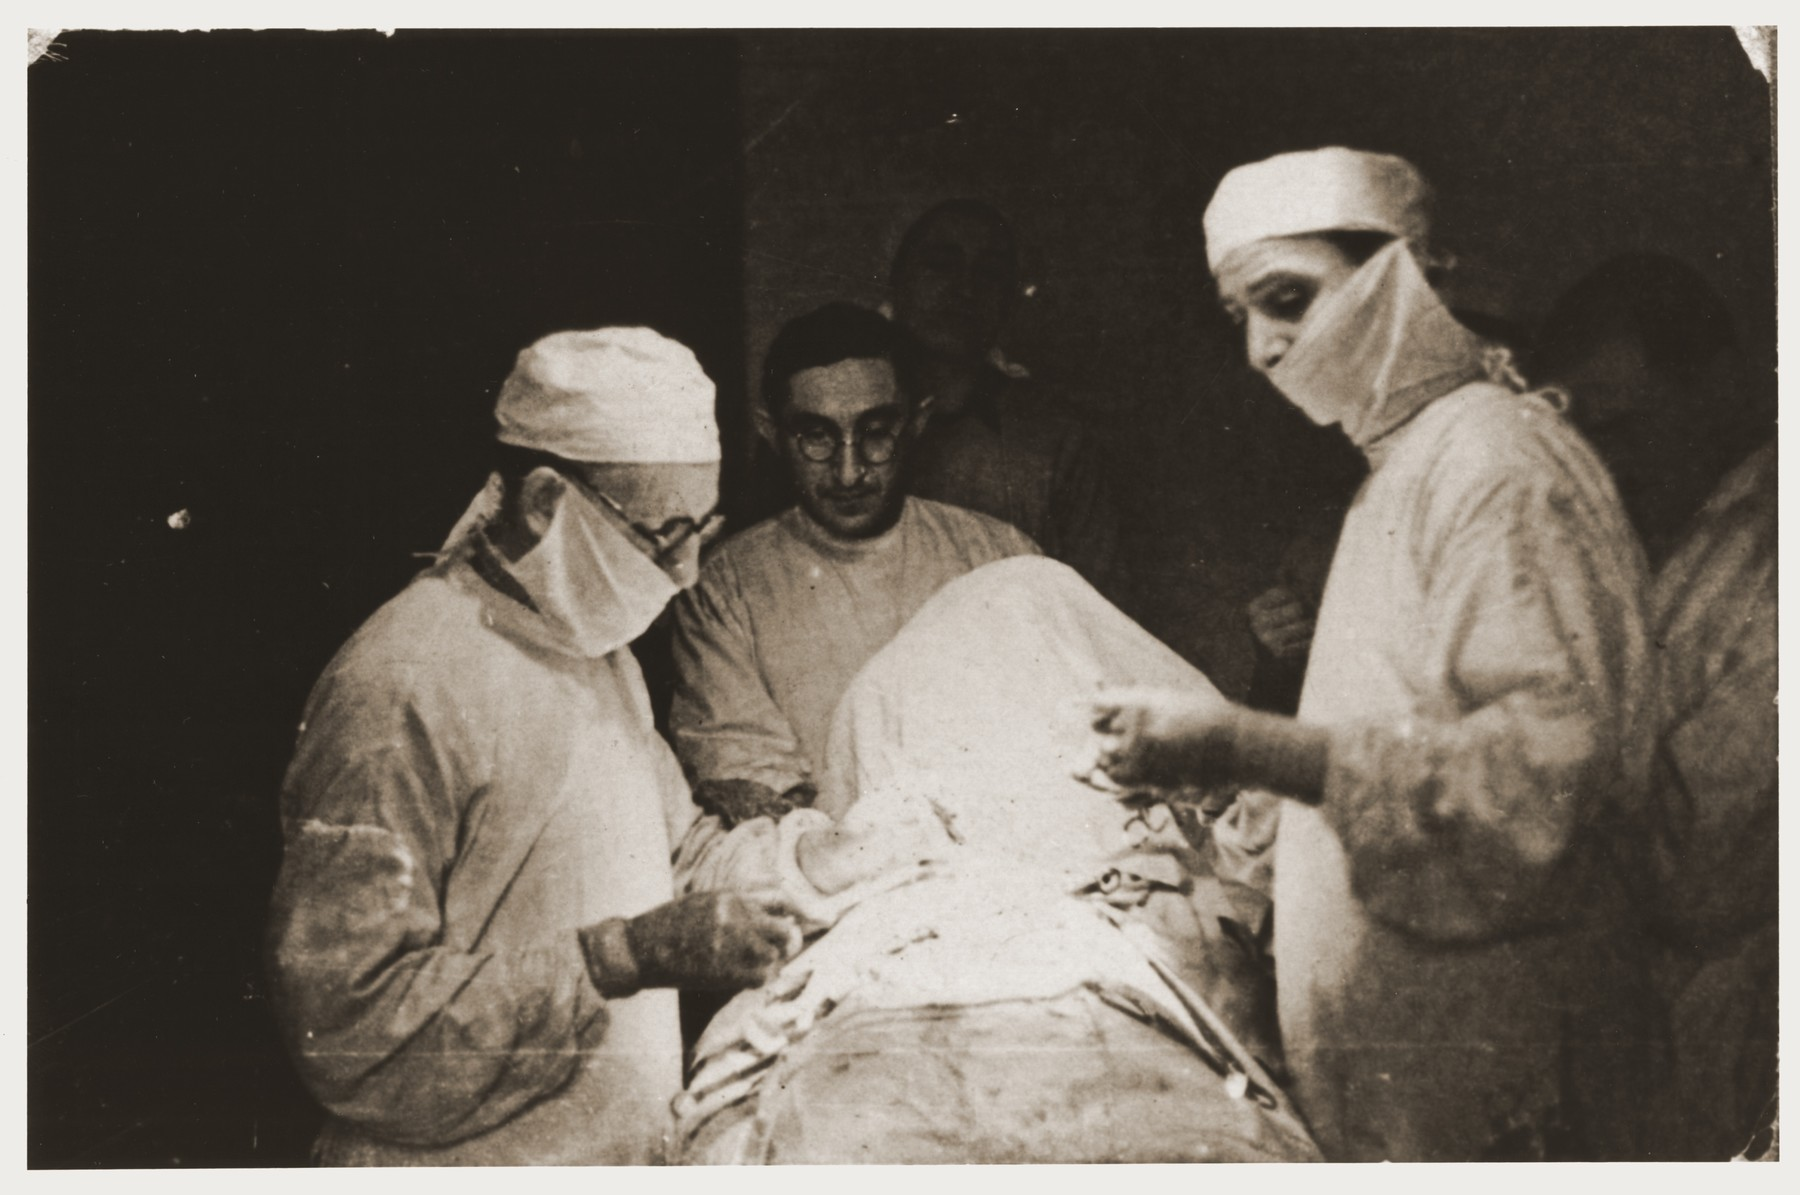 Dr. Eliasberg performs an operation in the Lodz ghetto hospital.